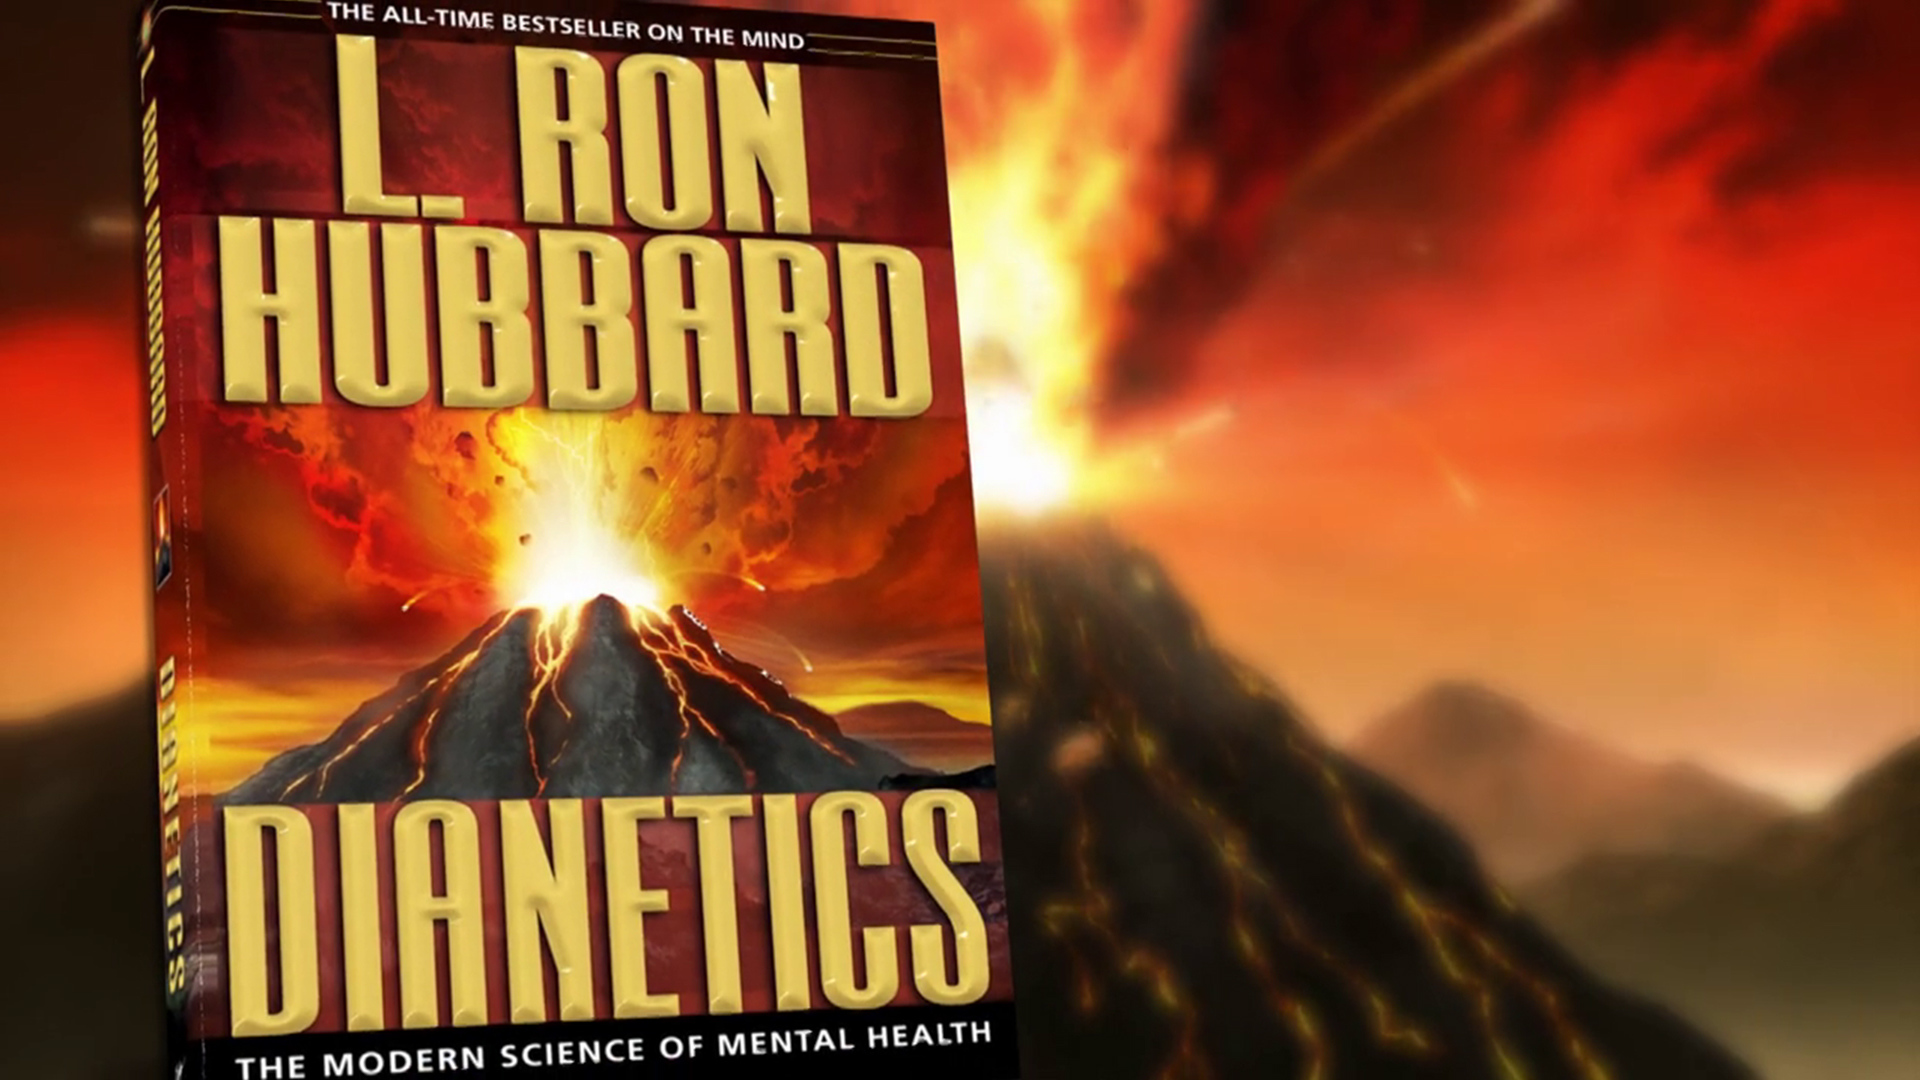 Dianetics Around the World